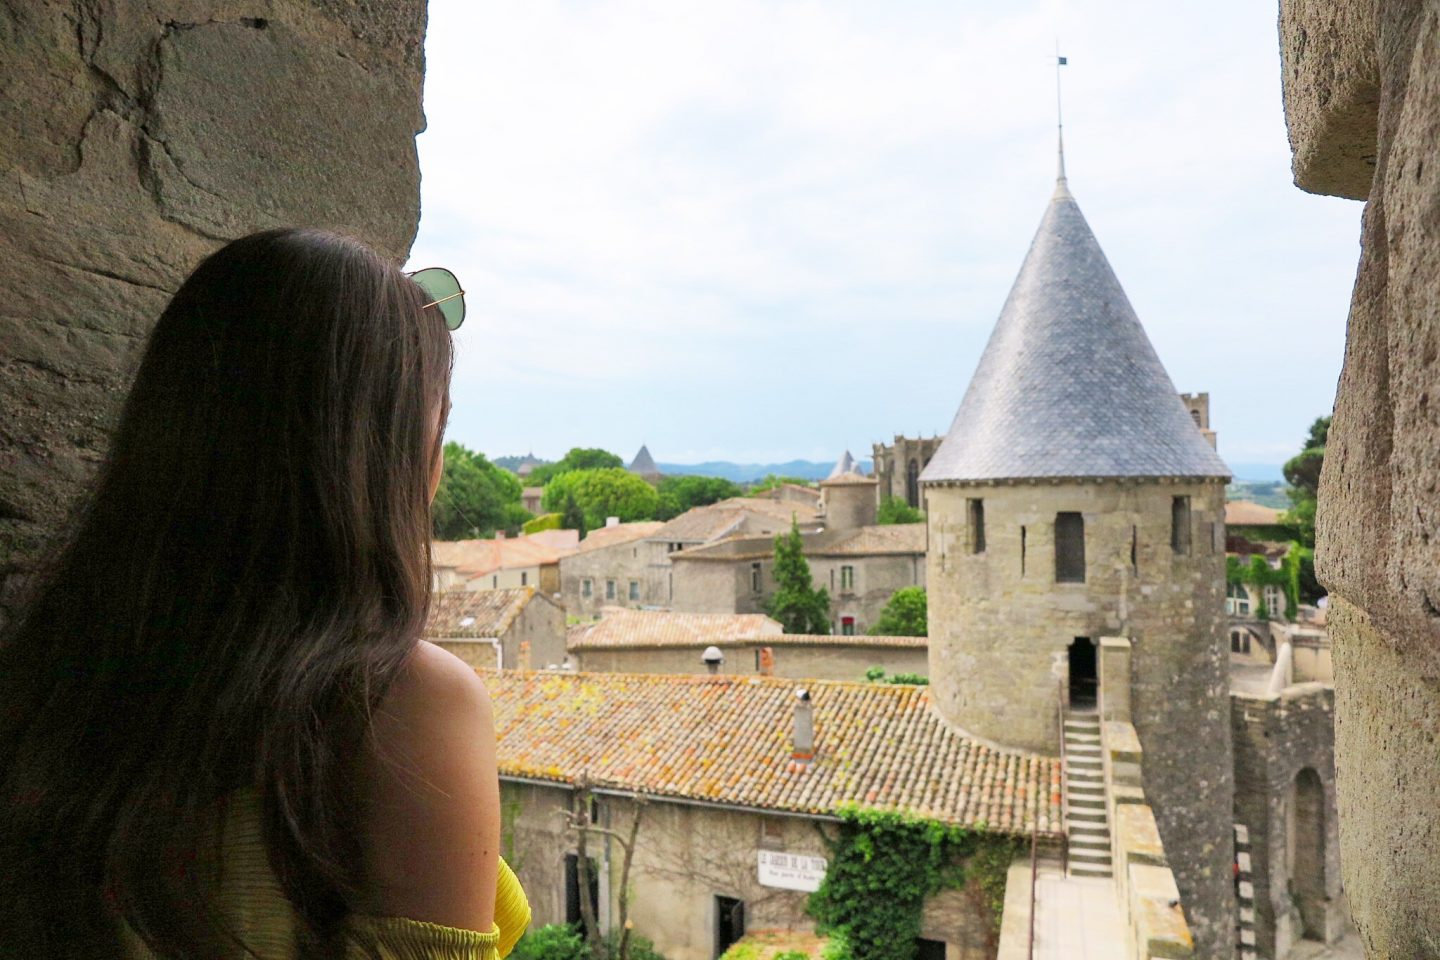 A FAIRYTALE WEEKEND: 48 HOURS IN CARCASSONNE, FRANCE